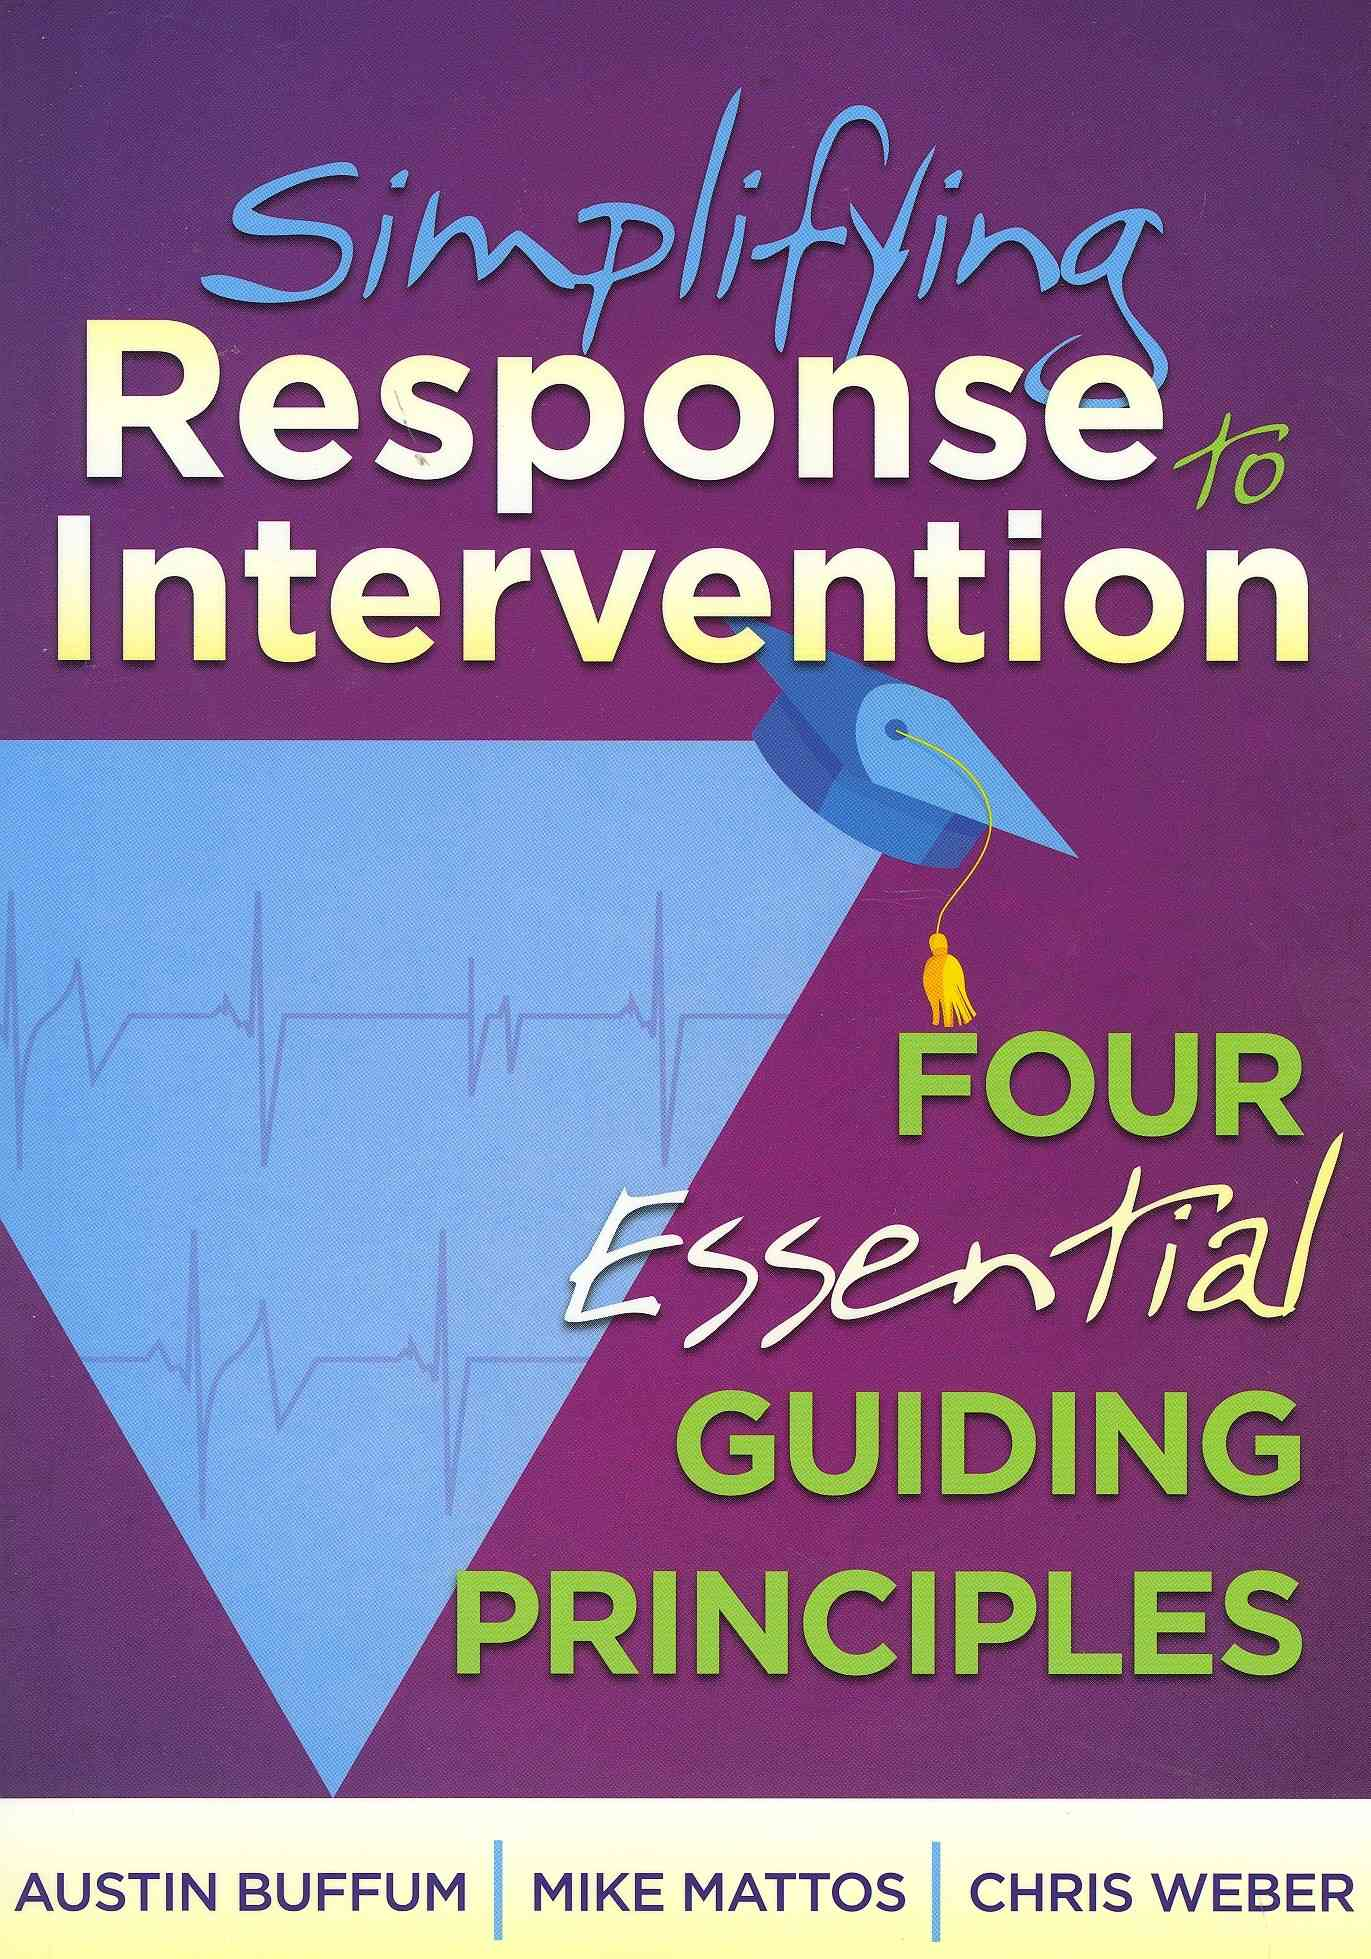 Simplifying Response to Intervention By Buffum, Austin/ Mattos, Mike/ Weber, Chris